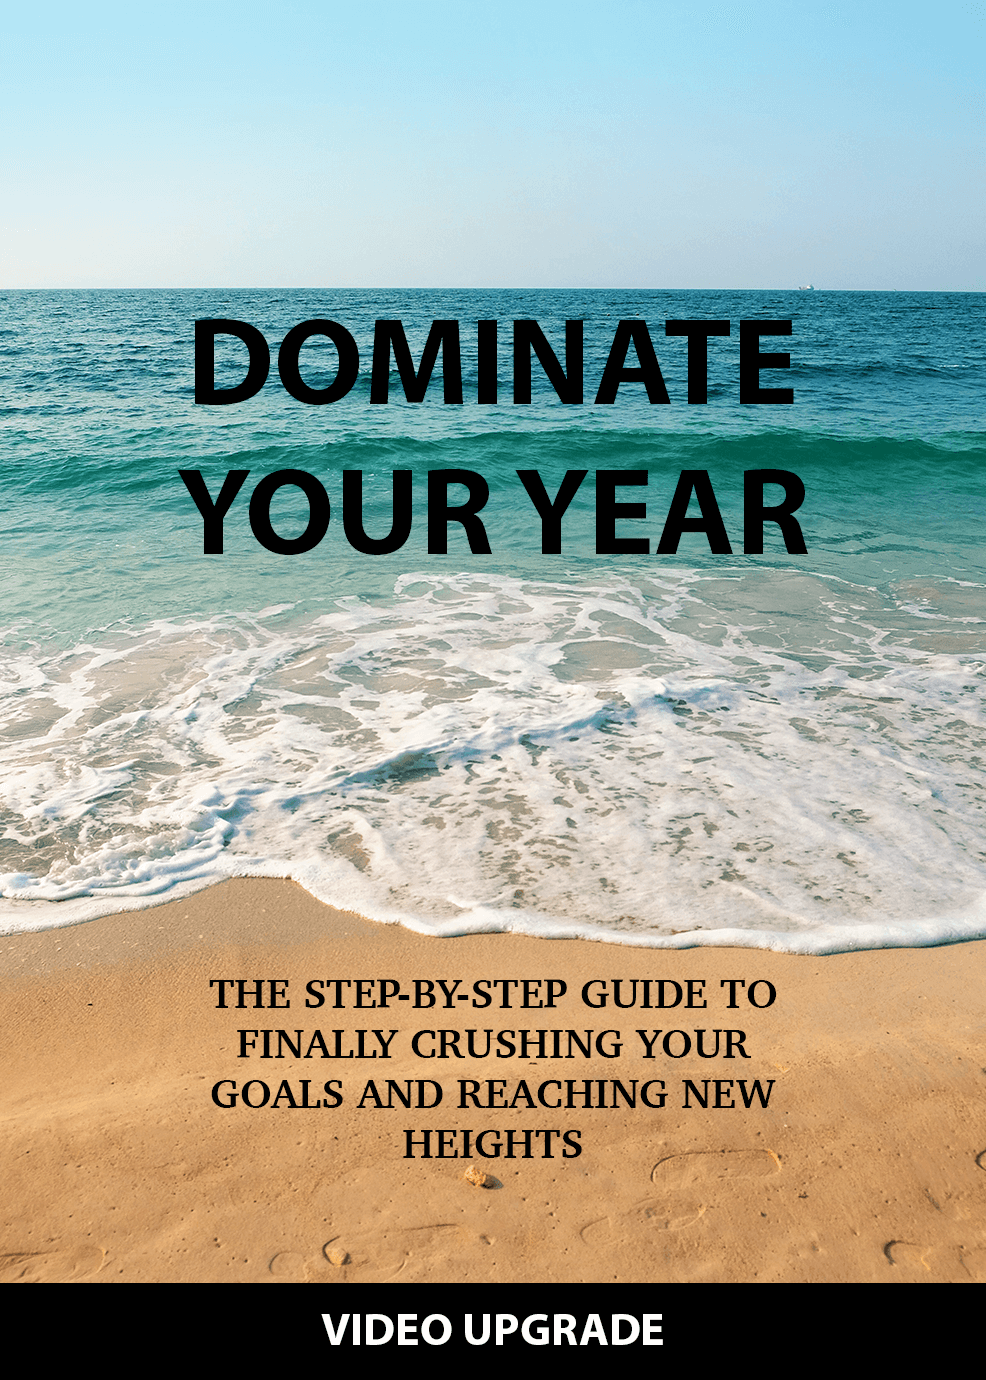 Dominate Your Year Video Upgrade